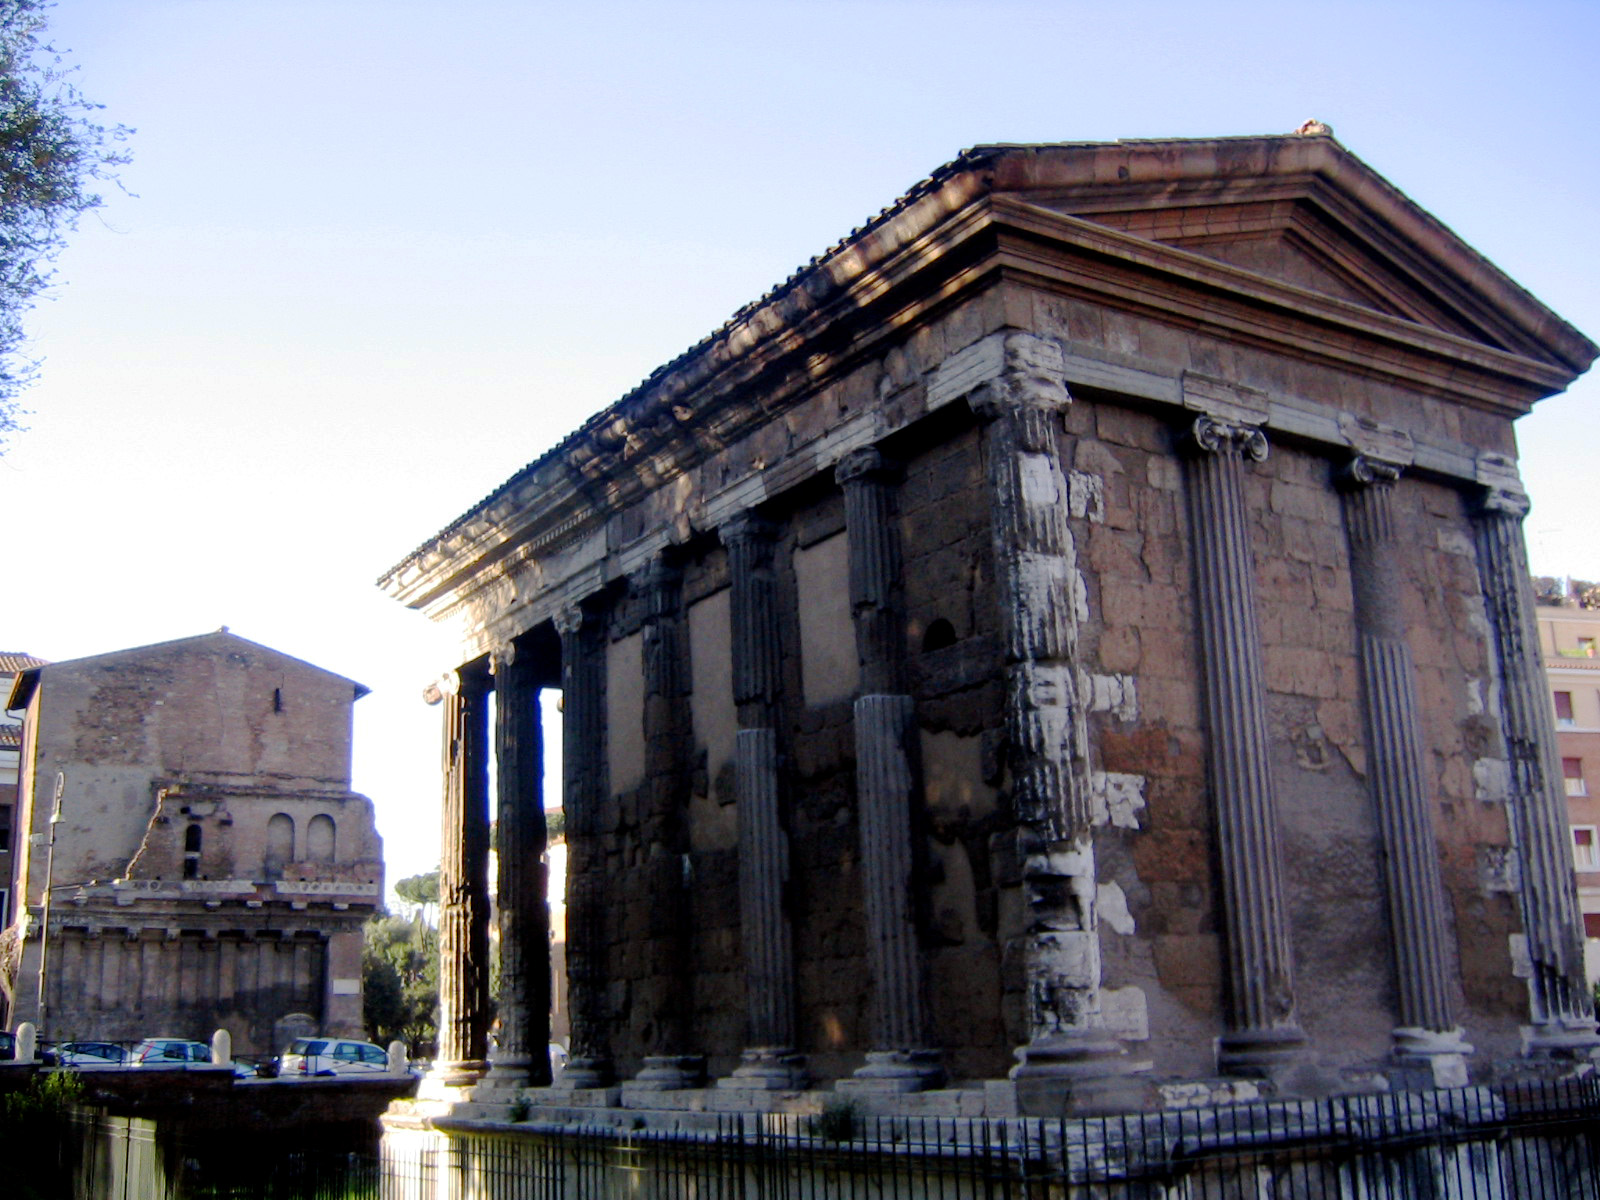 File:Temple of portunus back.jpg - Wikimedia Commons